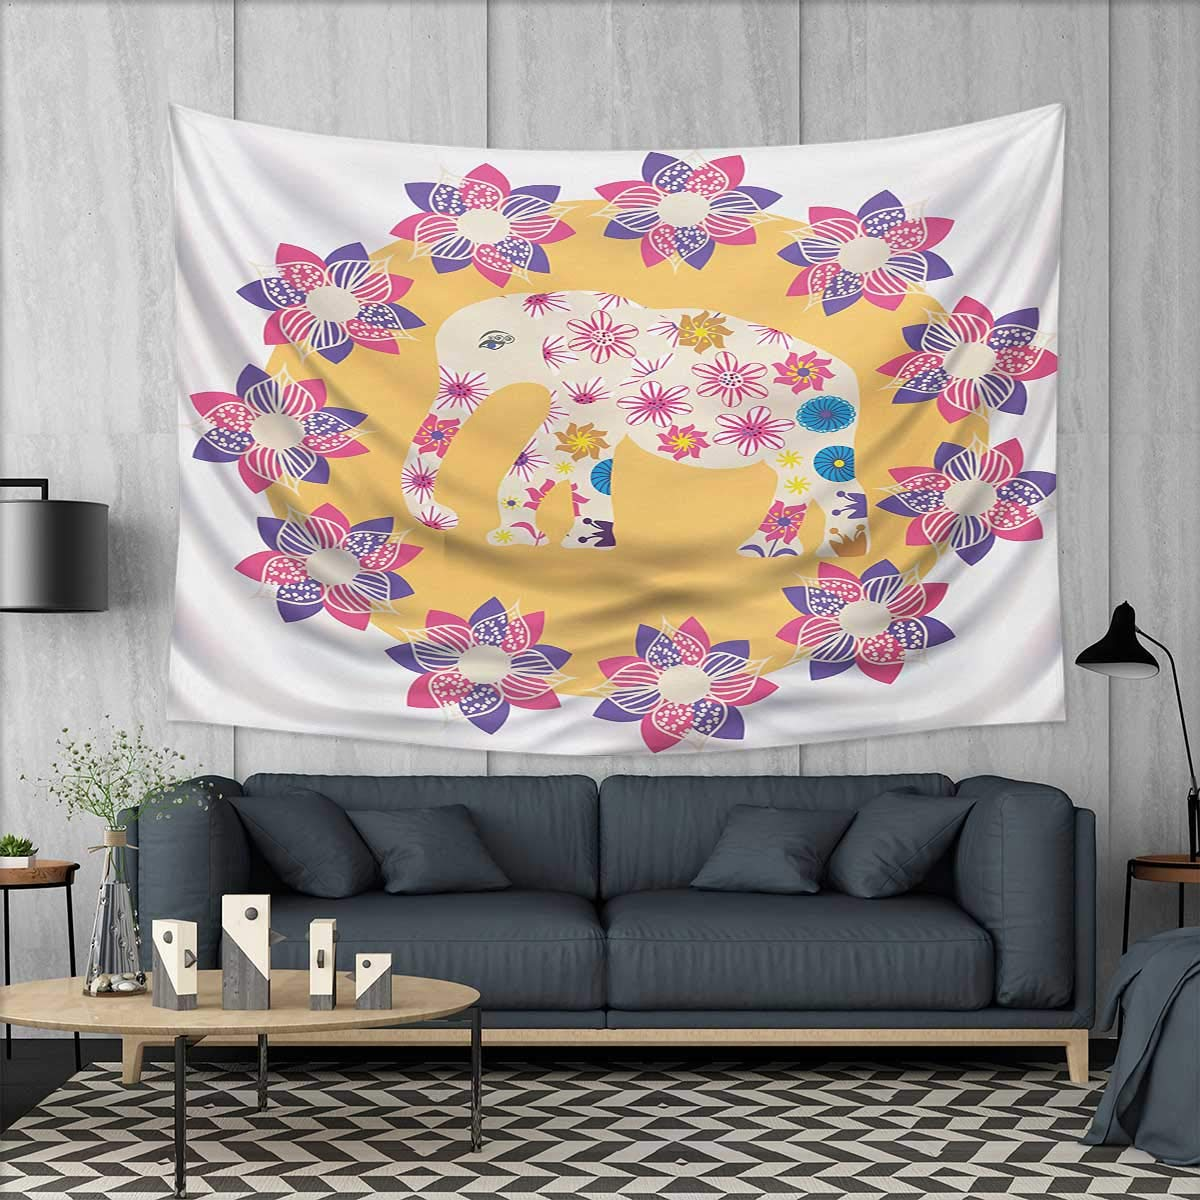 Anhuthree Kids Wall Tapestry Colorful Natural Wildlife Animal with Various Flowers Cartoon Style Thai Baby Elephant Home Decorations for Living Room Bedroom 80''x60'' Multicolor